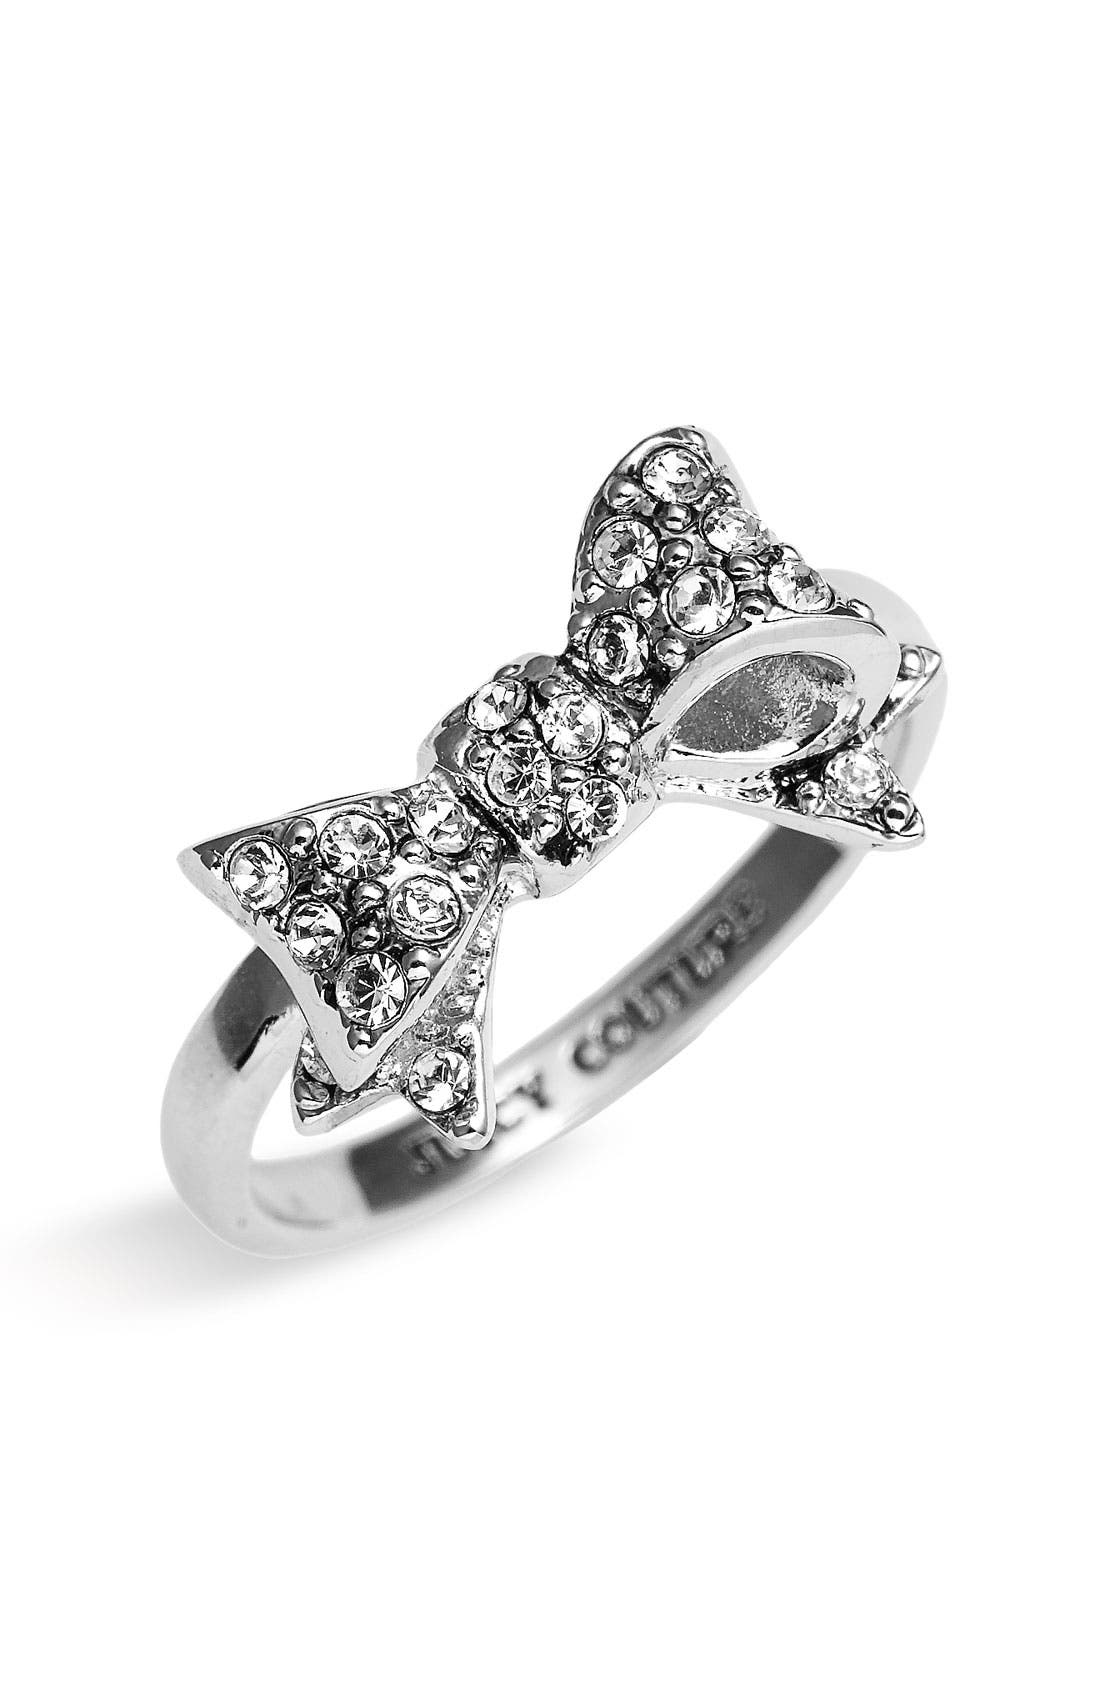 Main Image - Juicy Couture 'Bows for a Starlet' Pavé Bow Ring